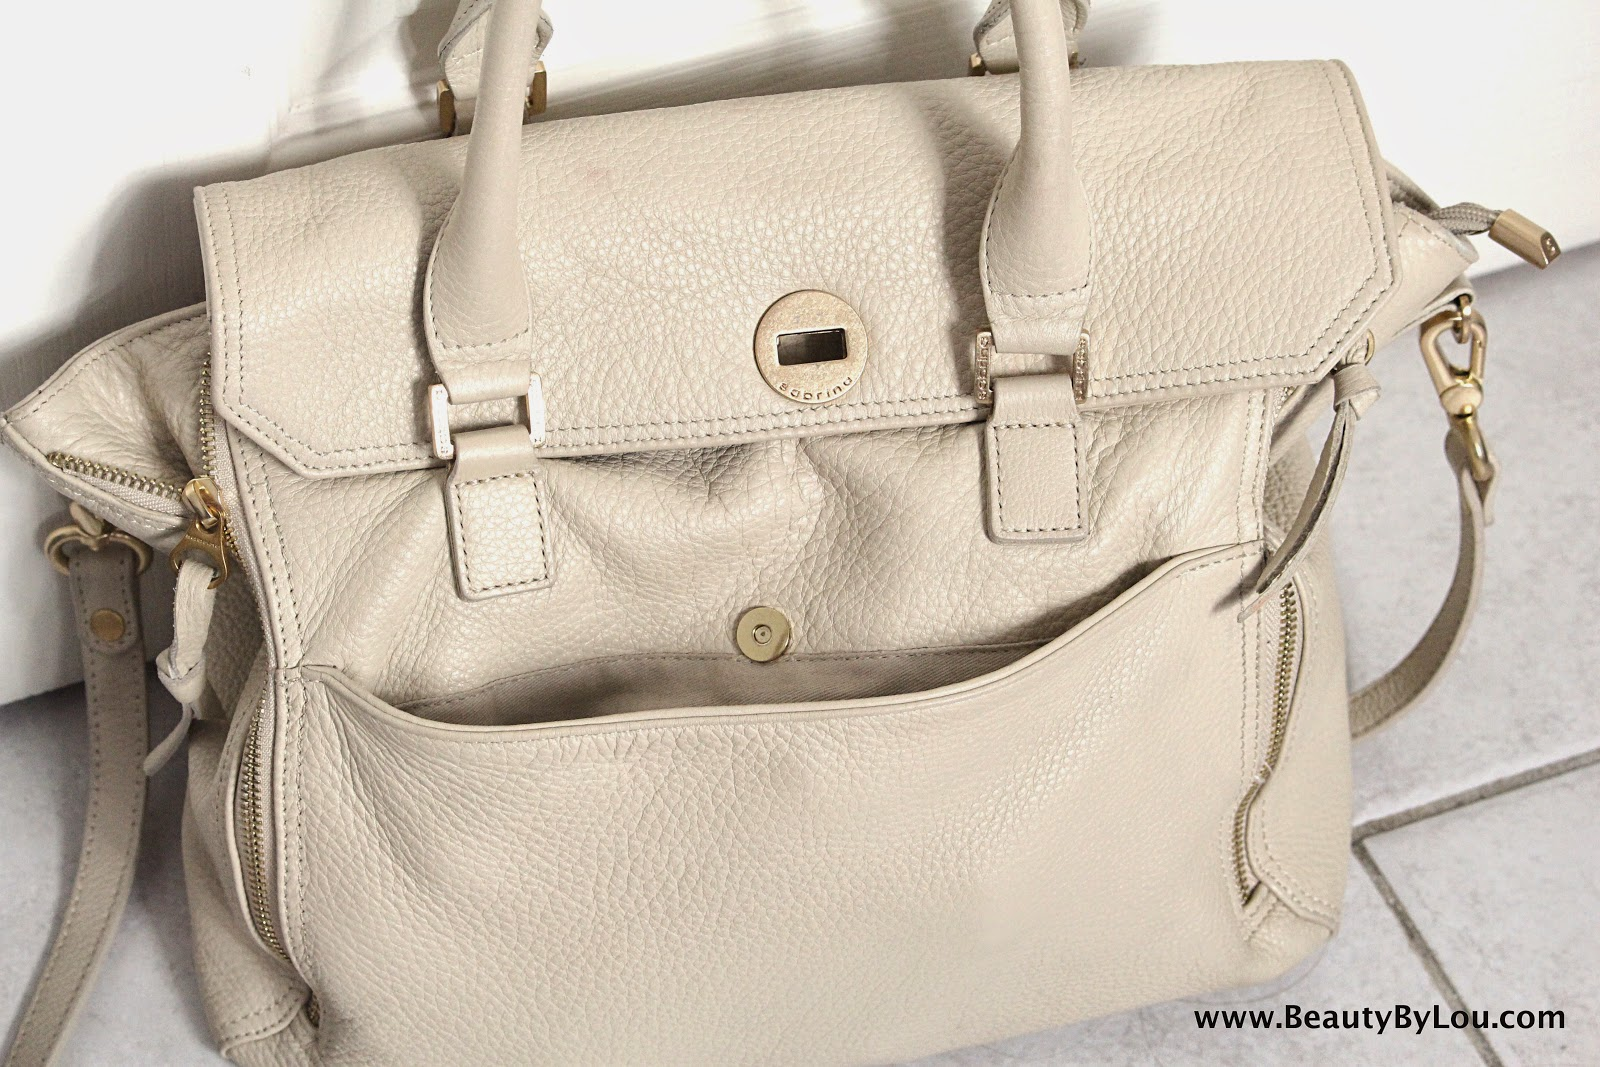 http://www.beautybylou.com/2014/10/tag-whats-in-my-bag.html